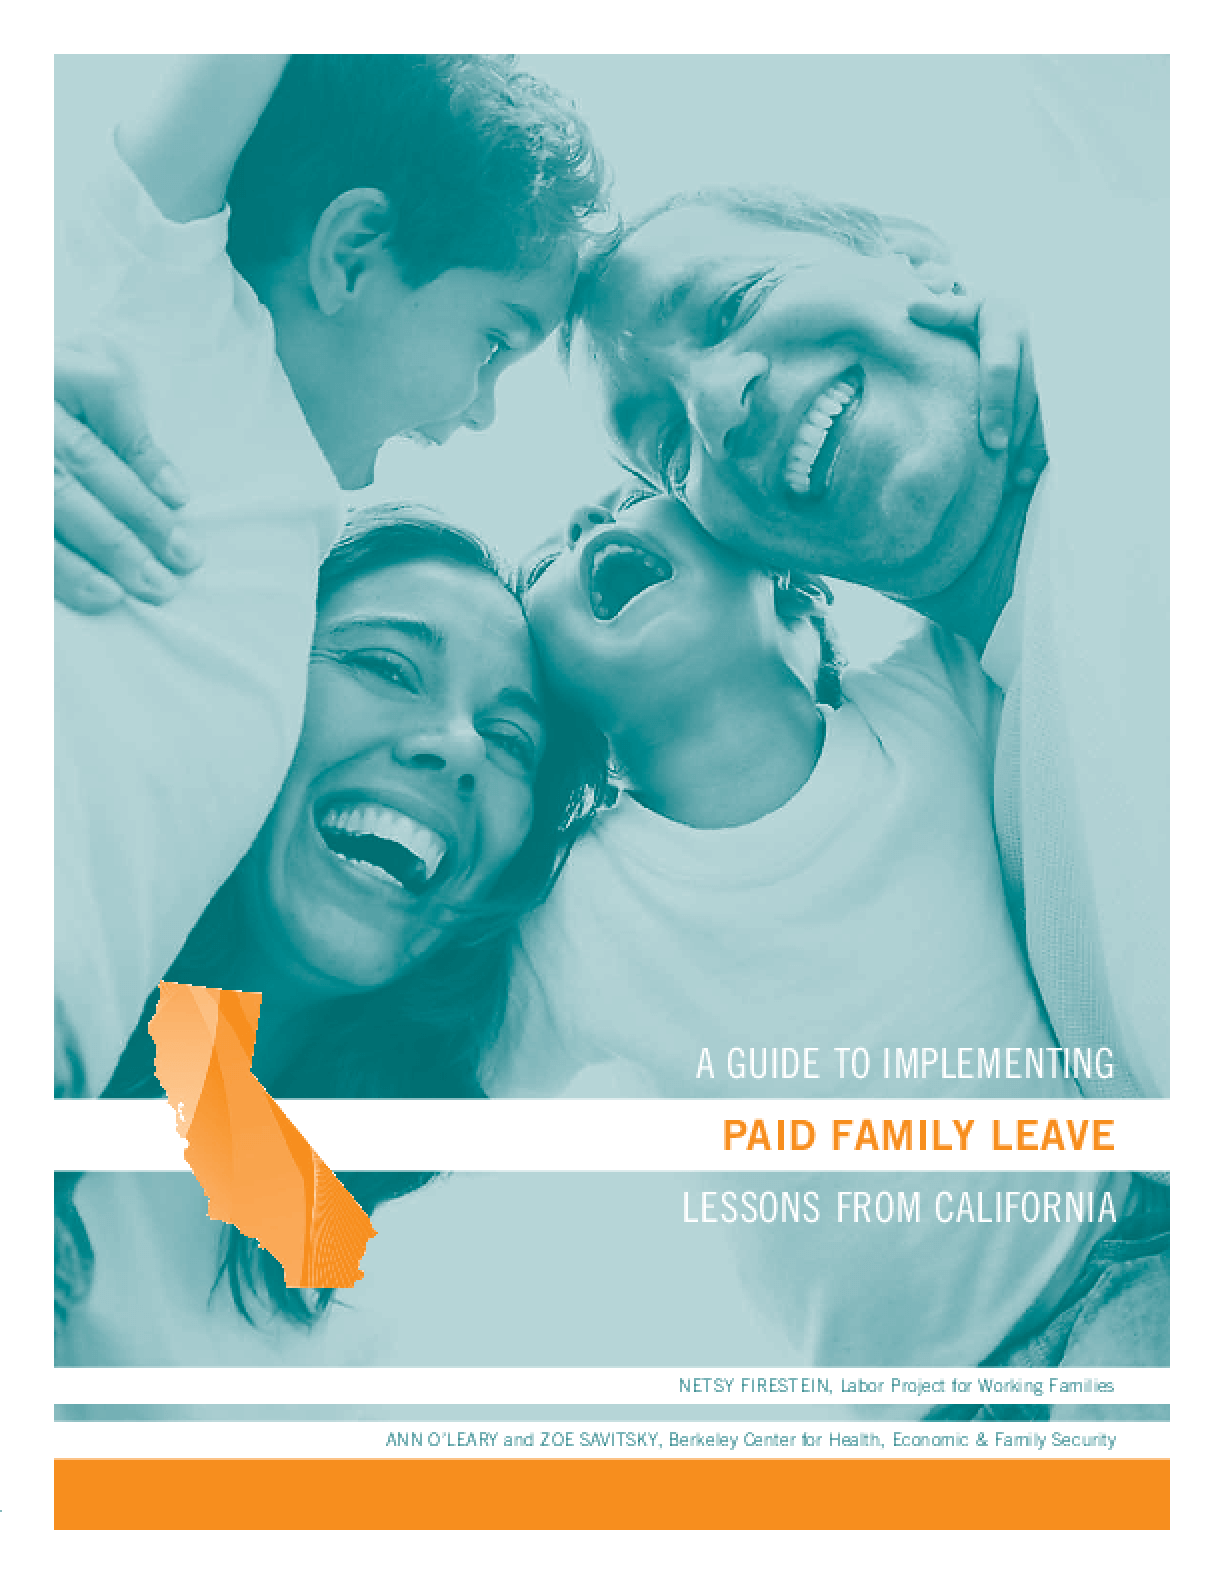 A Guide to Implementing Paid Family Leave - Lessons From California